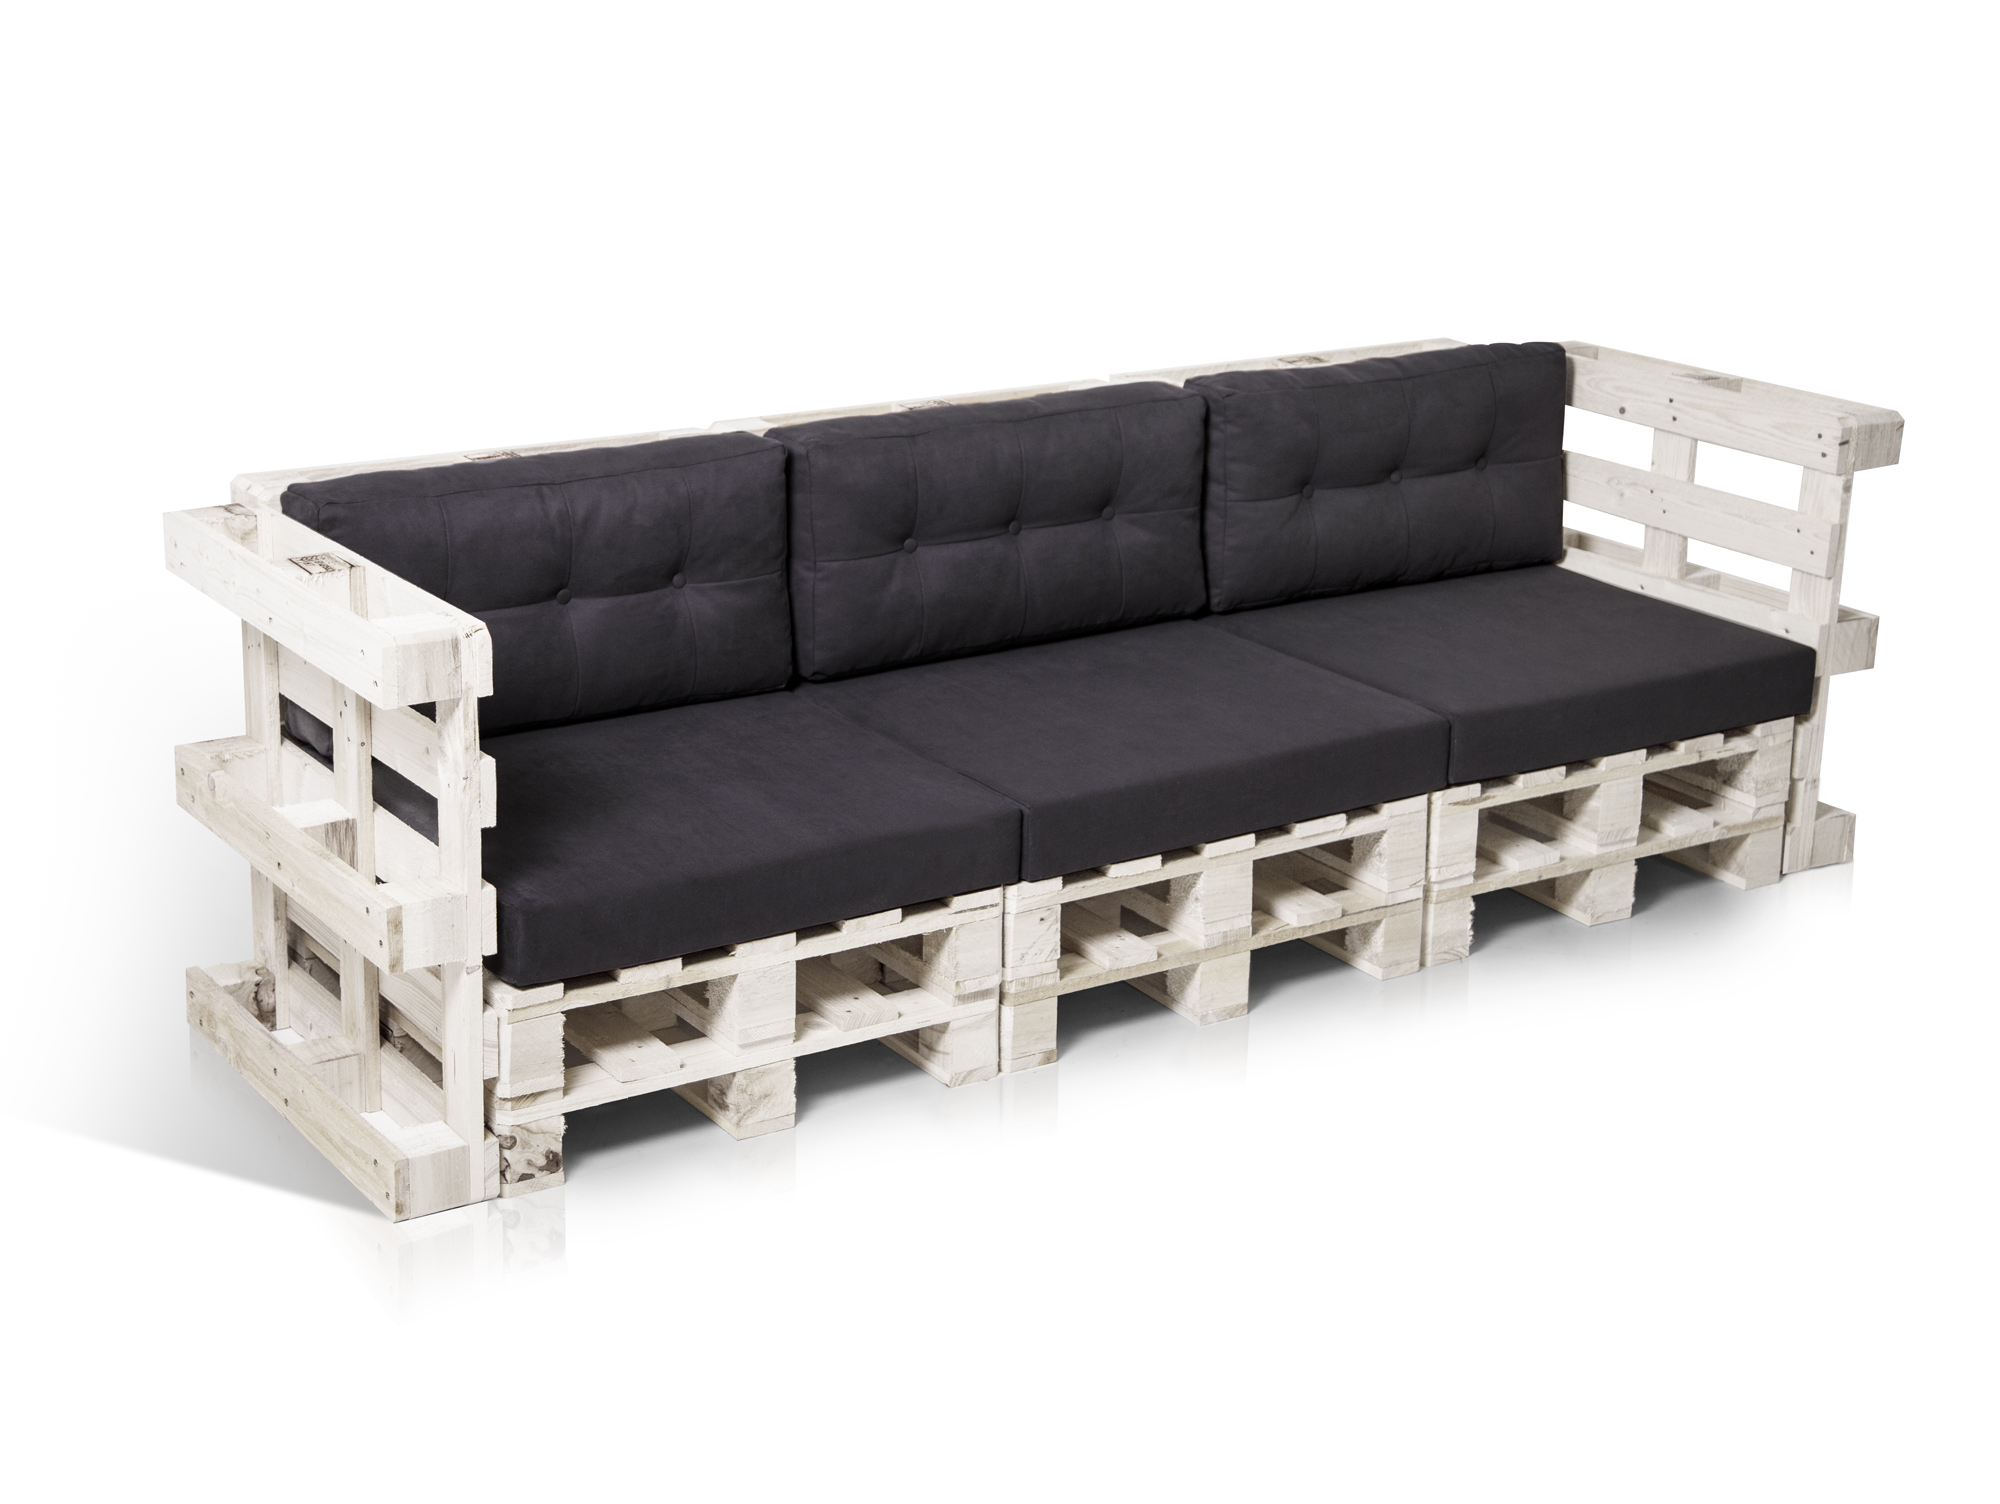 gartenm bel aus paletten palettenm bel palettensofa 299 84579 deutschland willhaben. Black Bedroom Furniture Sets. Home Design Ideas